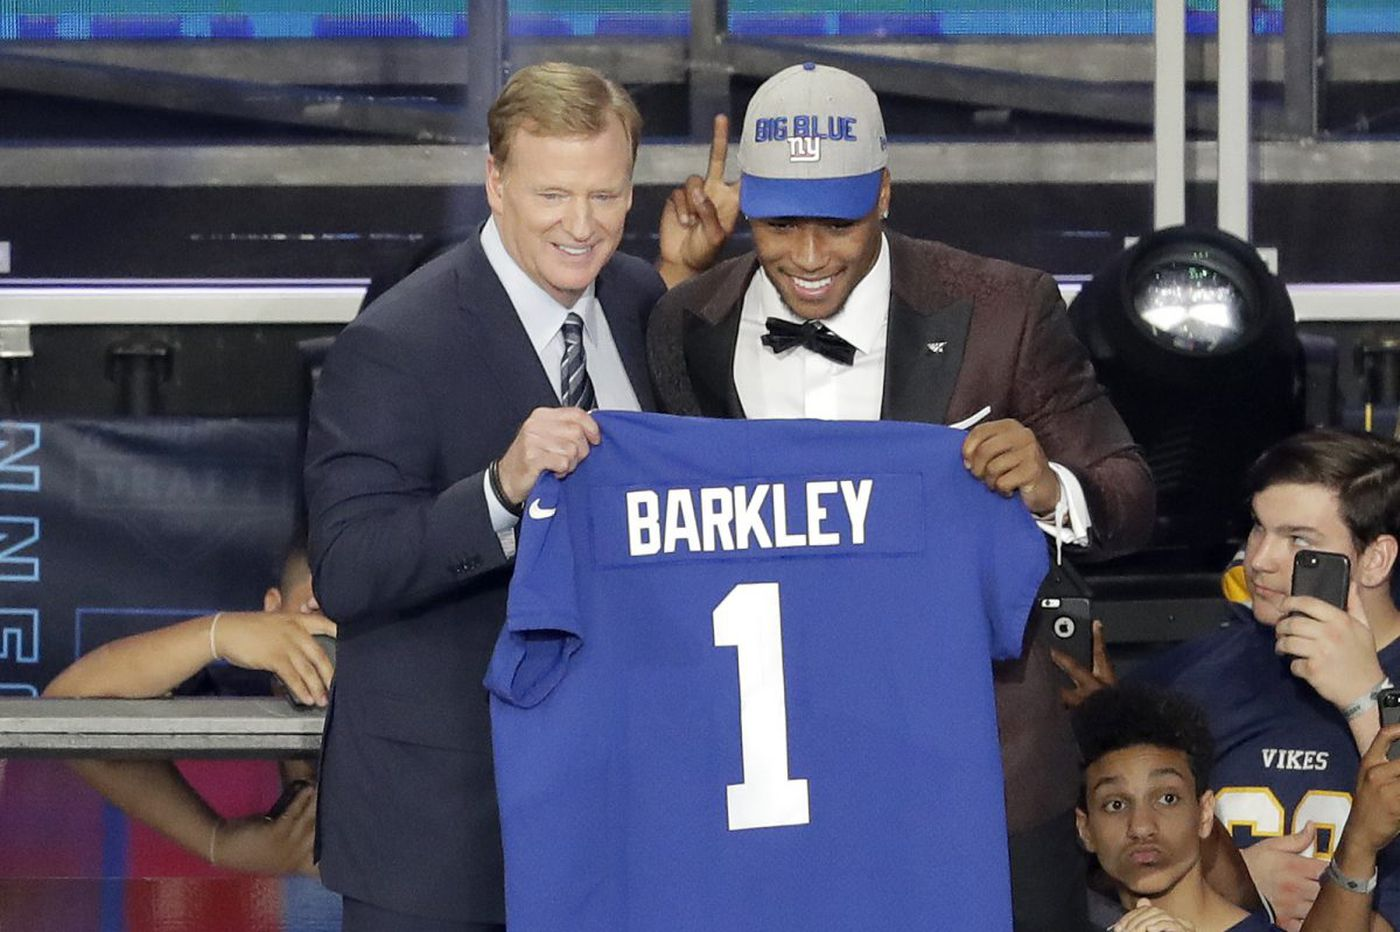 5fcb6e6d9 Saquon Barkley picked No. 2 overall by Giants  Browns take Baker Mayfield  at No. 1